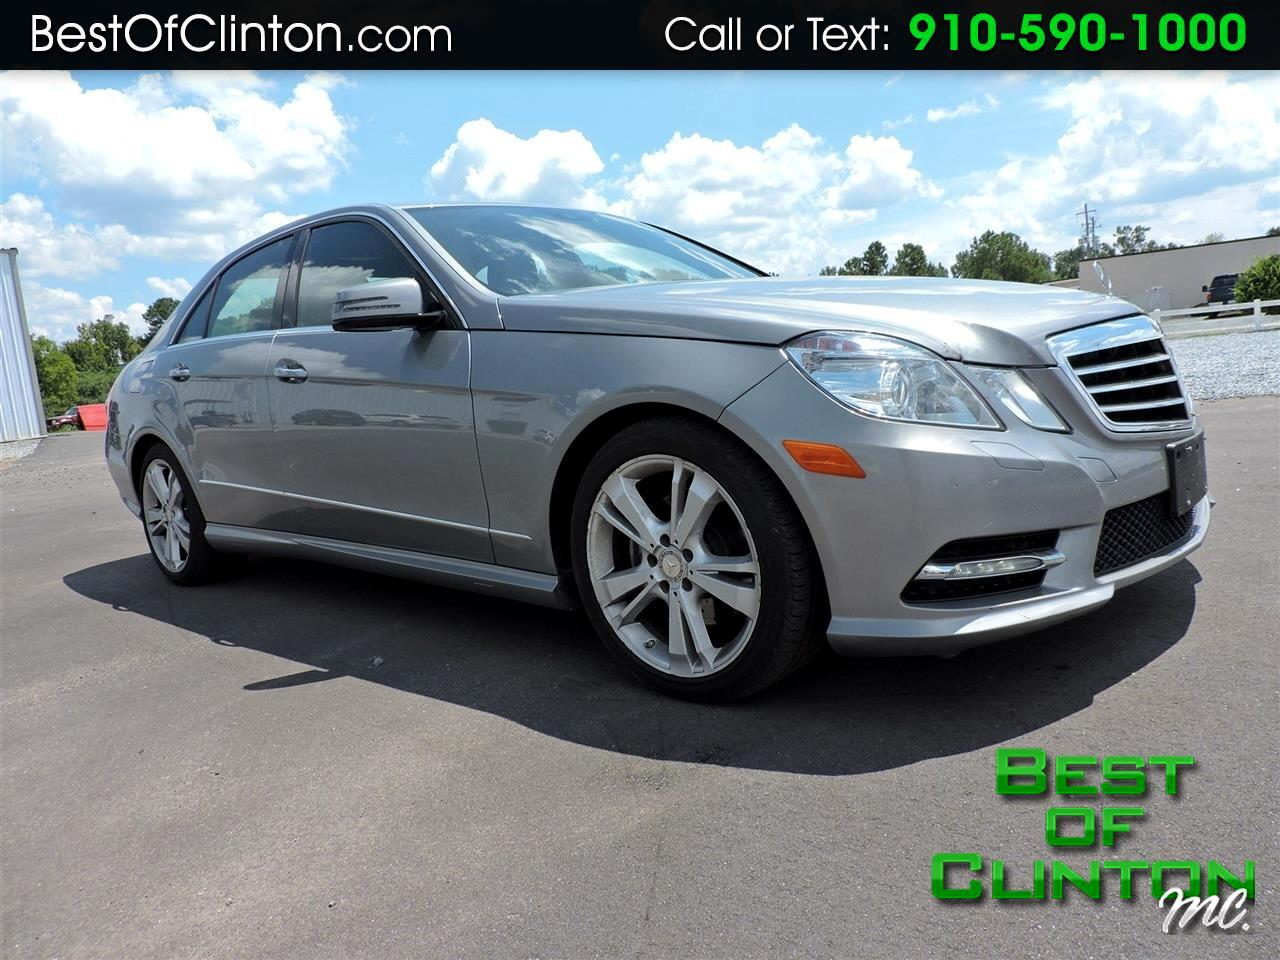 2013 Mercedes-Benz E-Class 4dr Sdn E 350 Luxury 4MATIC *Ltd Avail*